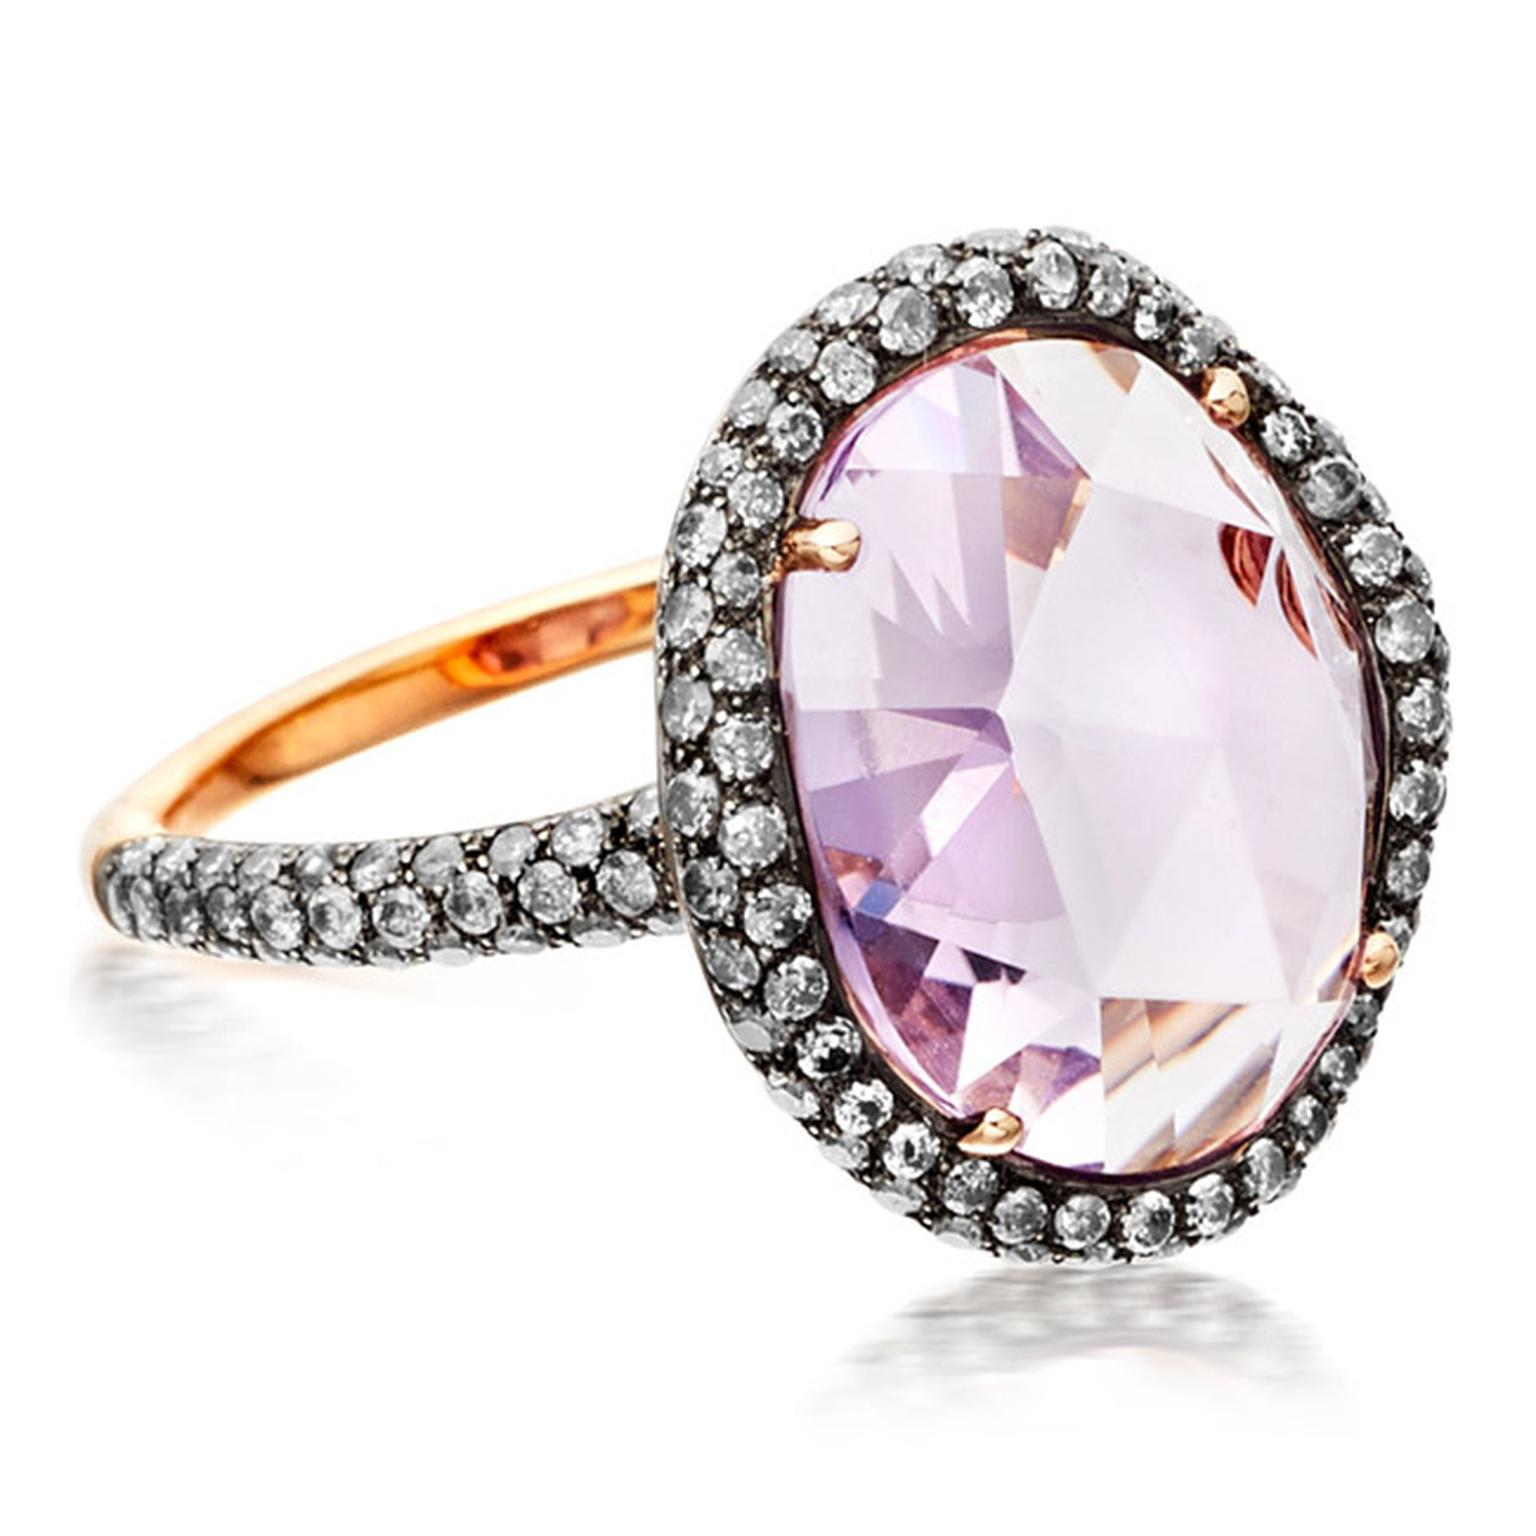 Astley Clark medium Fao ring featuring a central Rose de France amethyst and molten pavé diamonds.